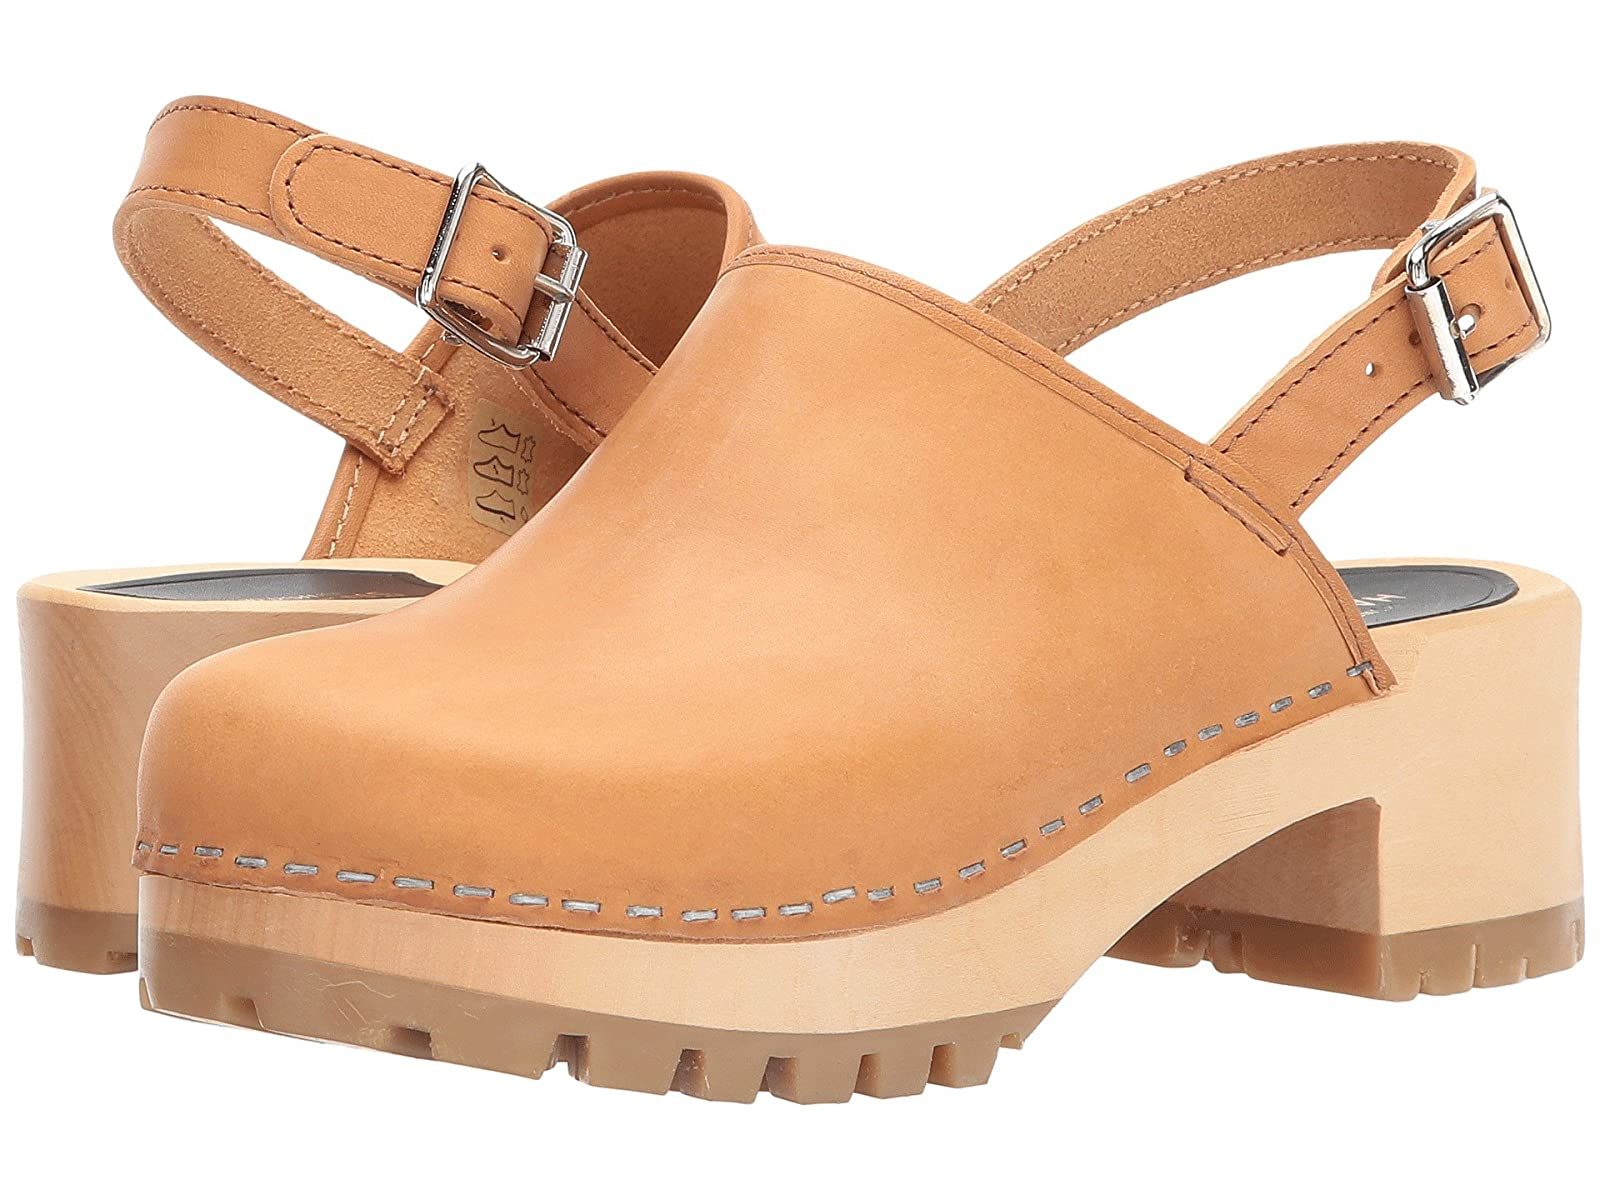 Swedish Hasbeens JillAtmospheric grades have affordable shoes